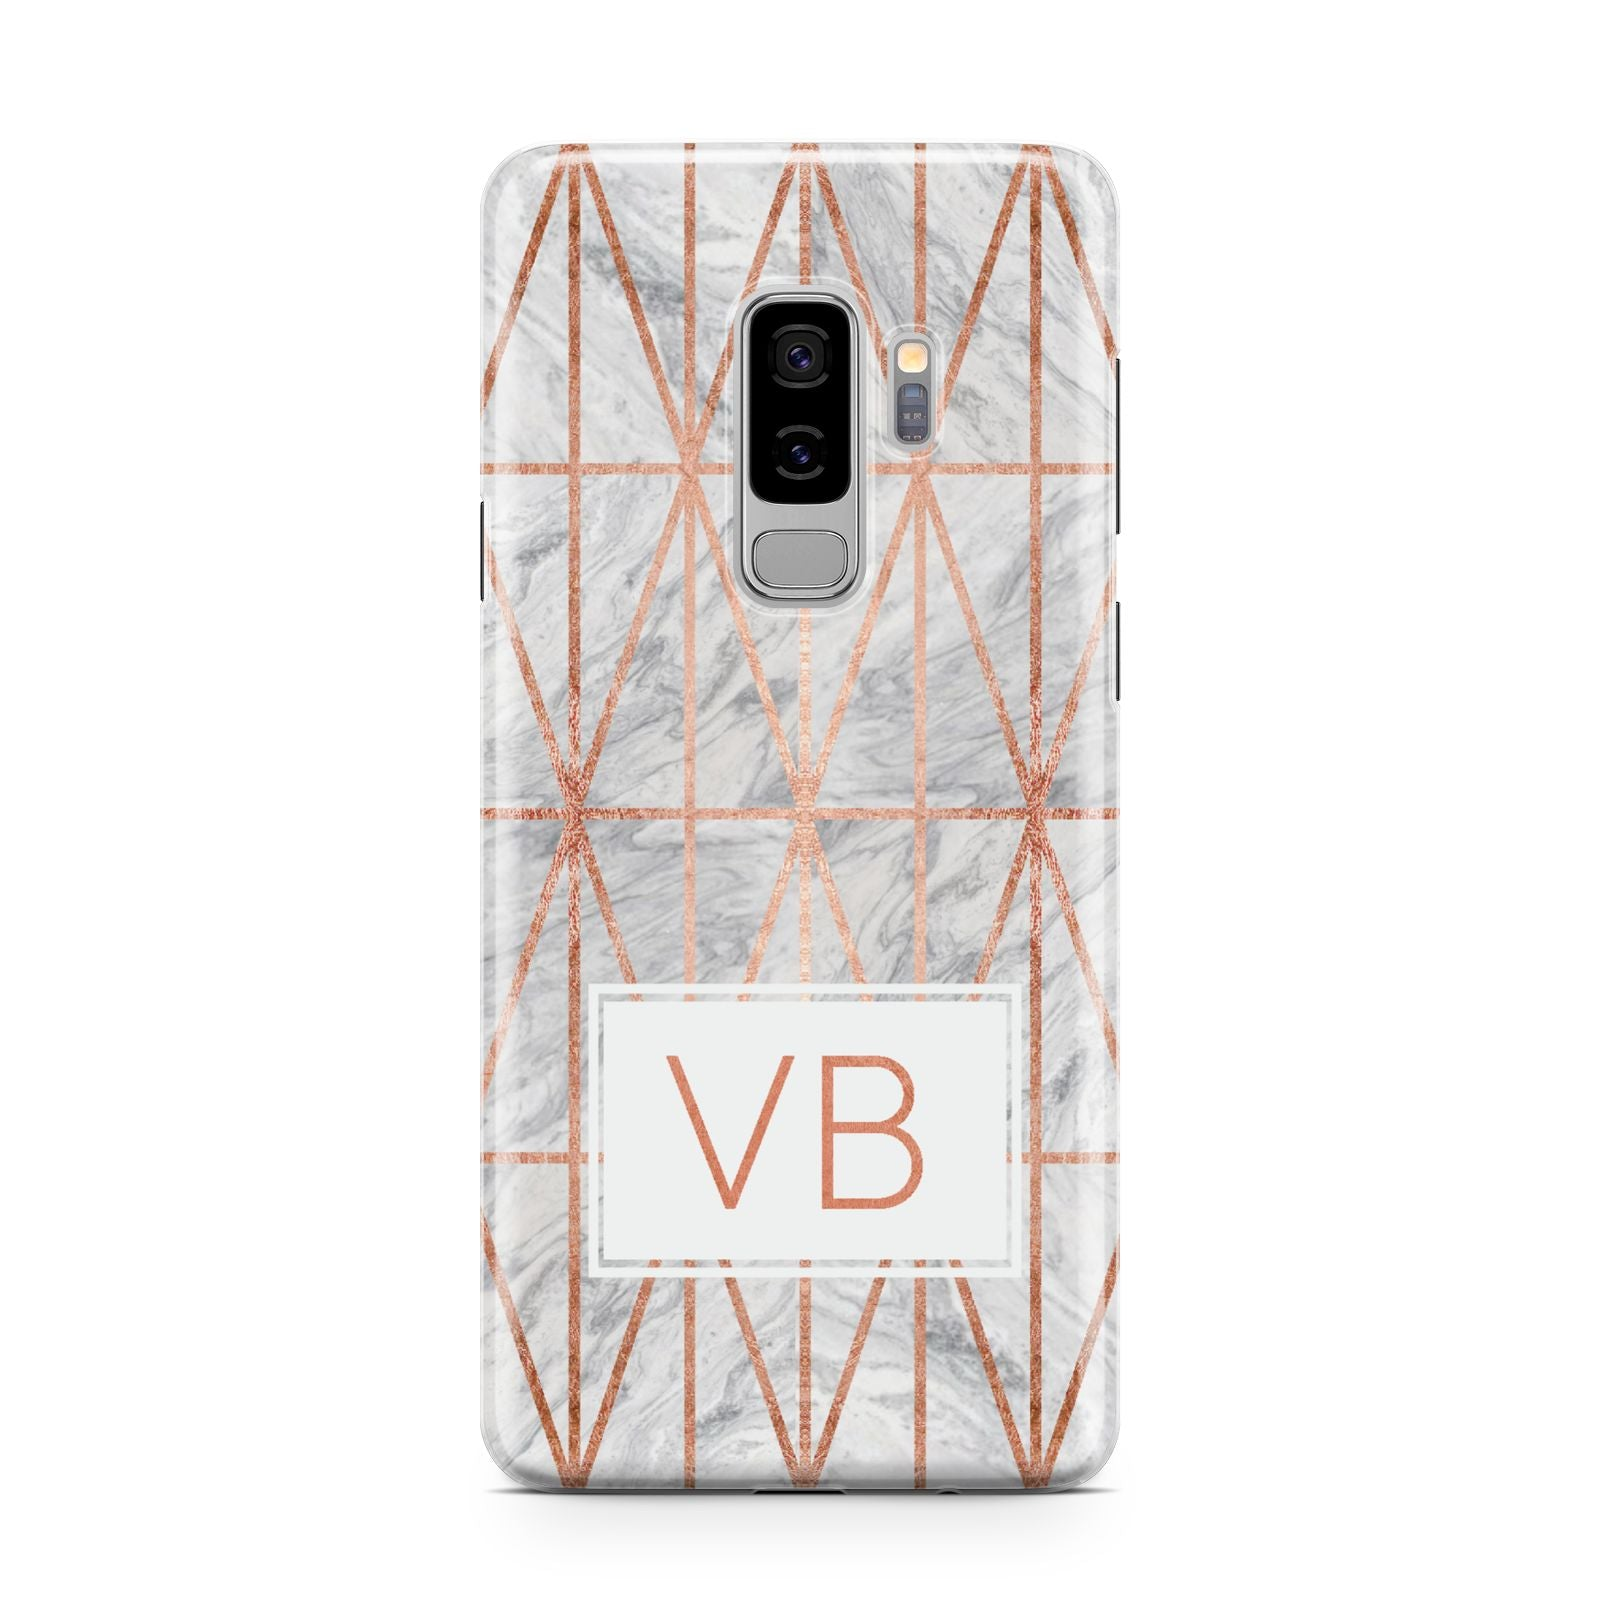 Personalised Triangular Marble Initials Samsung Galaxy S9 Plus Case on Silver phone